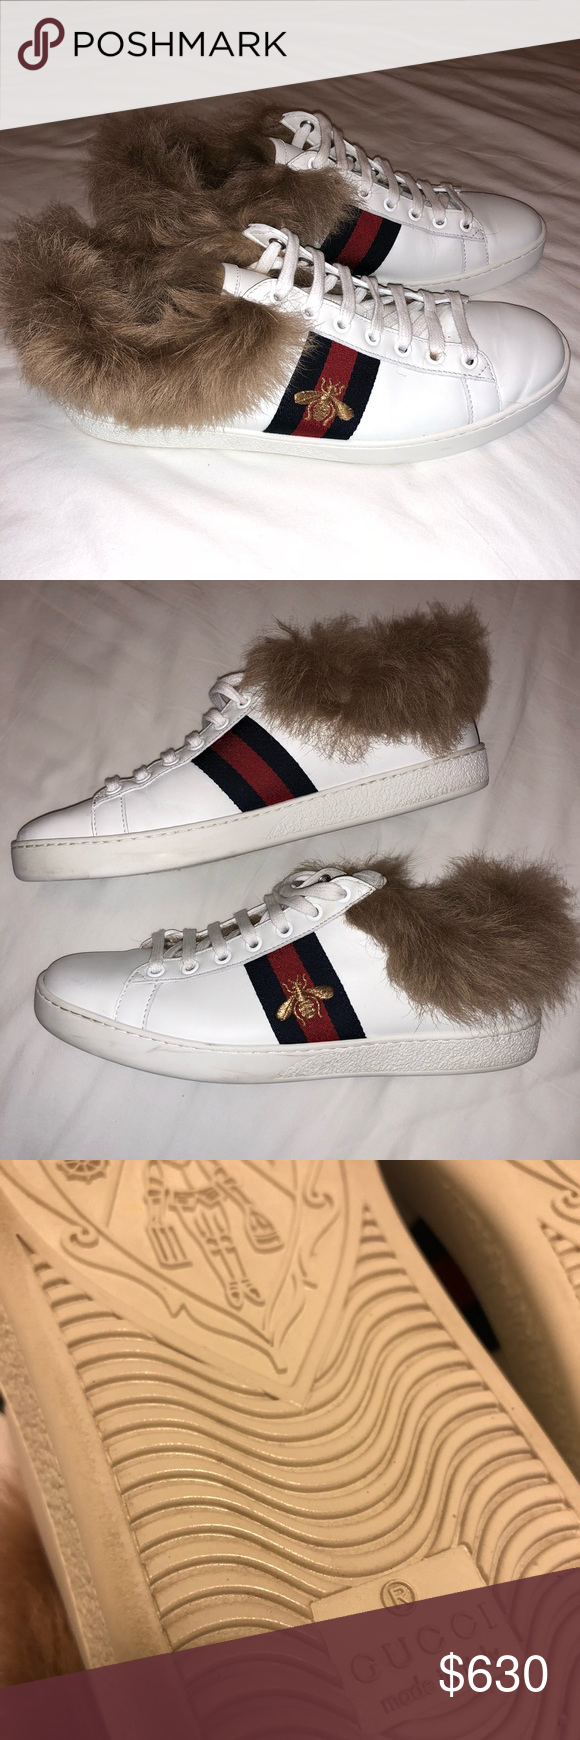 "300456df4d08 AUTHENTIC Gucci Ace Sneakers Wool Fur White - 100% AUTHENTIC Gucci ""Ace""  sneakers with wool-lined interior   trim - Lightly worn and refinished -  wool type  ..."